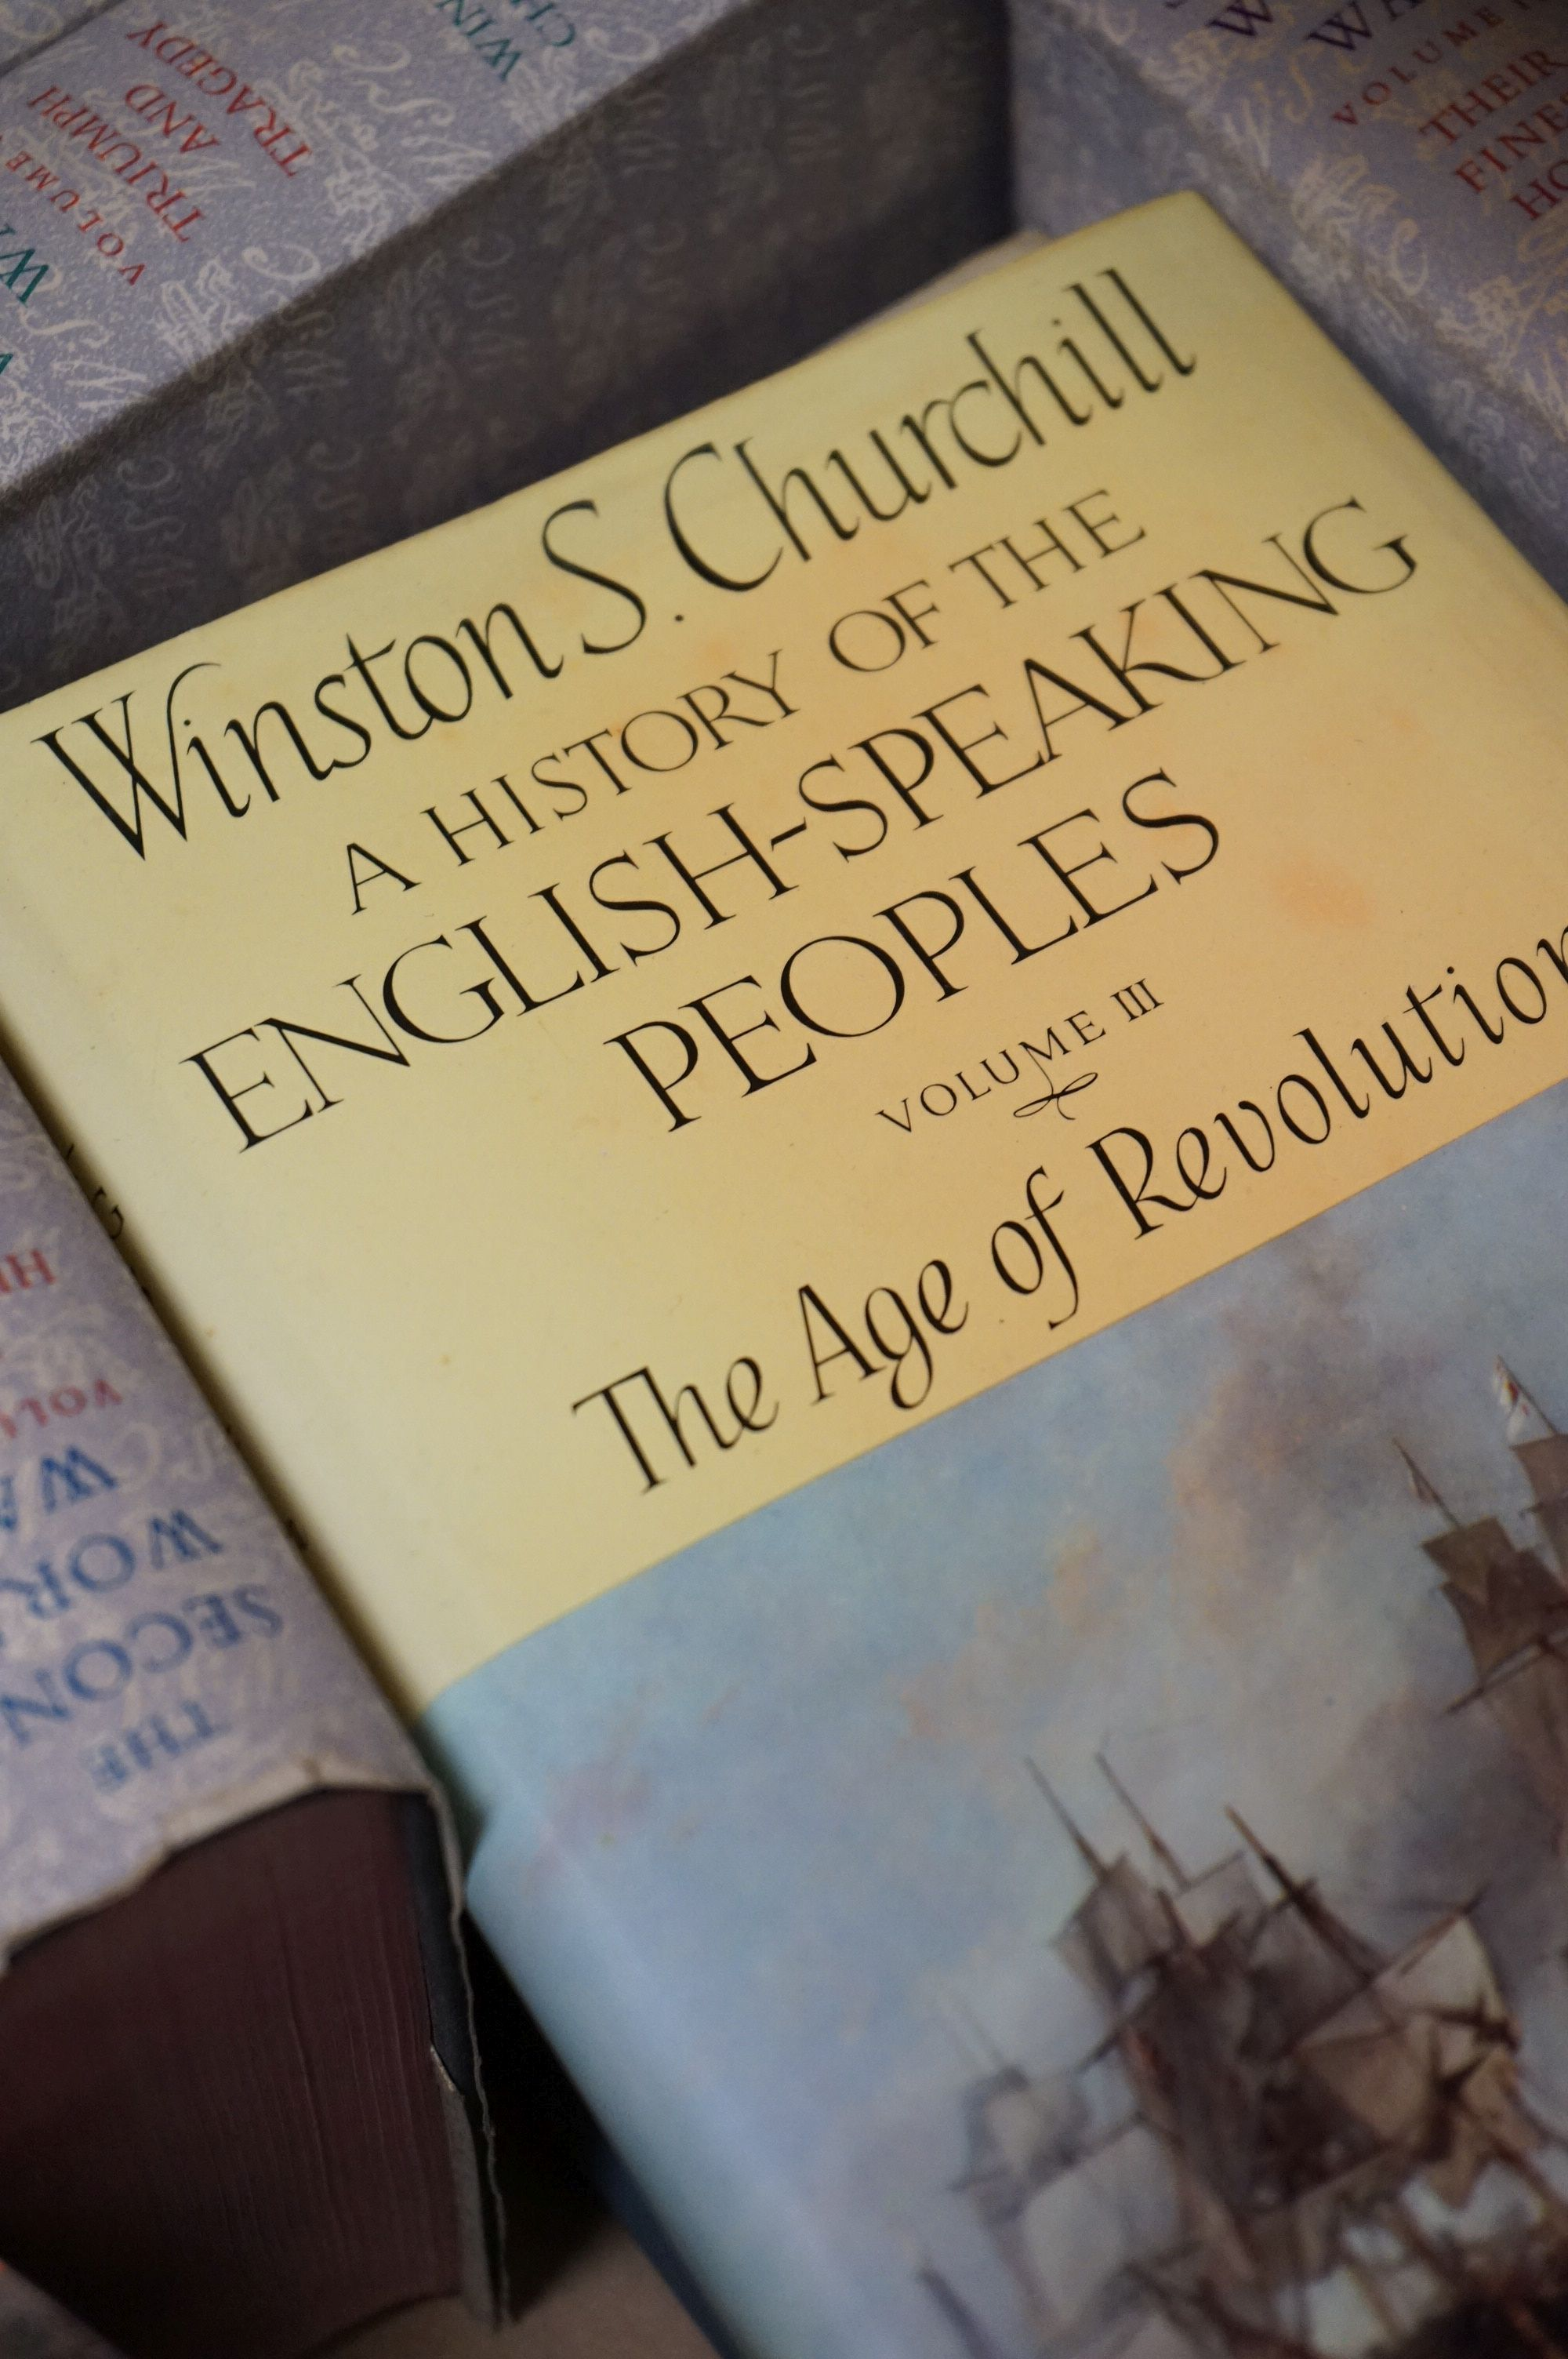 Churchill, Winston, The Second World War, 6 volumes, The History of the English Speaking Union - Image 2 of 4